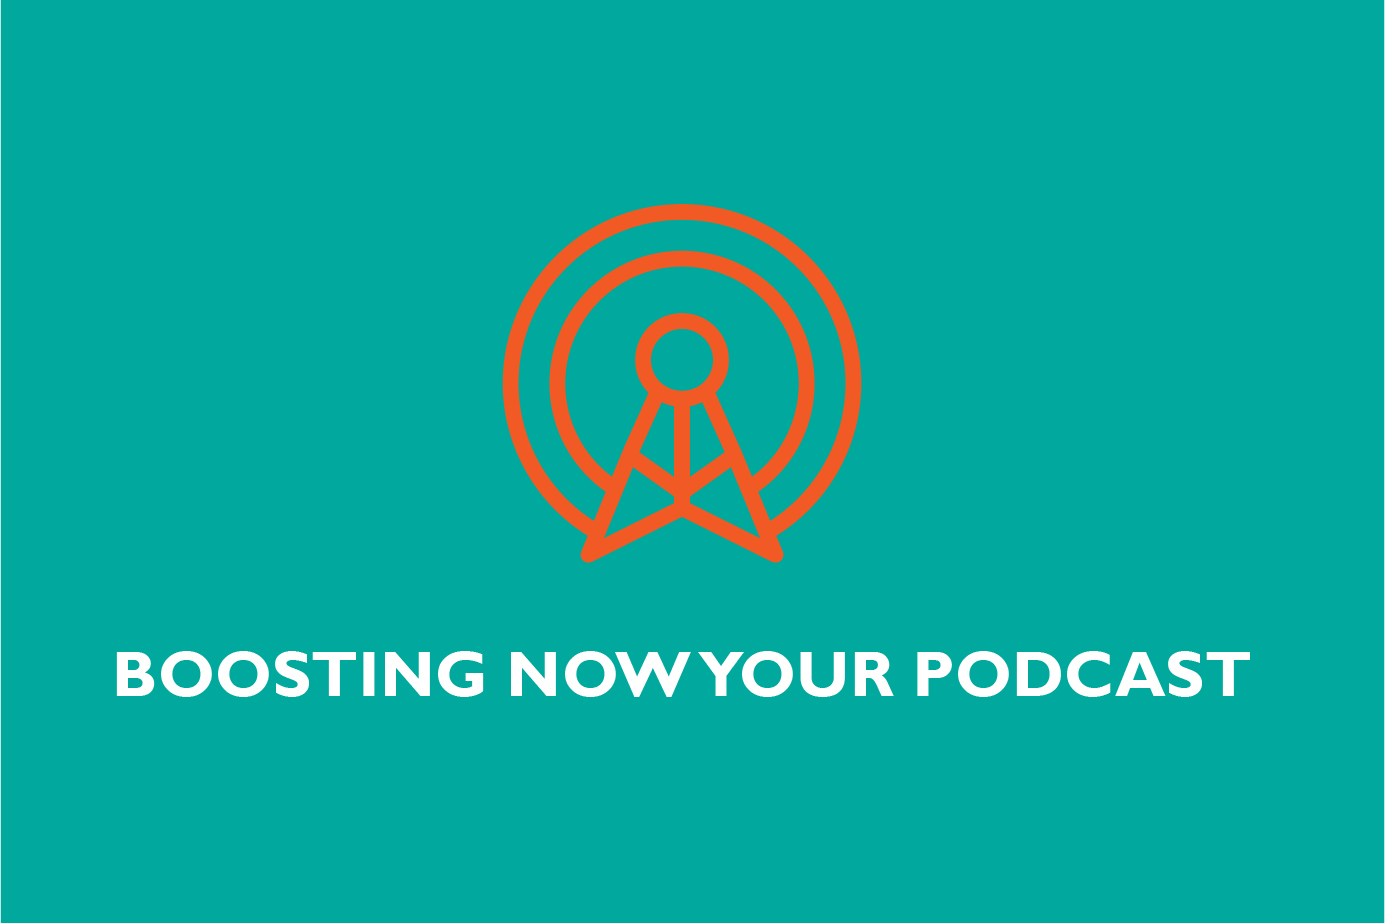 do successfully podcast boosting